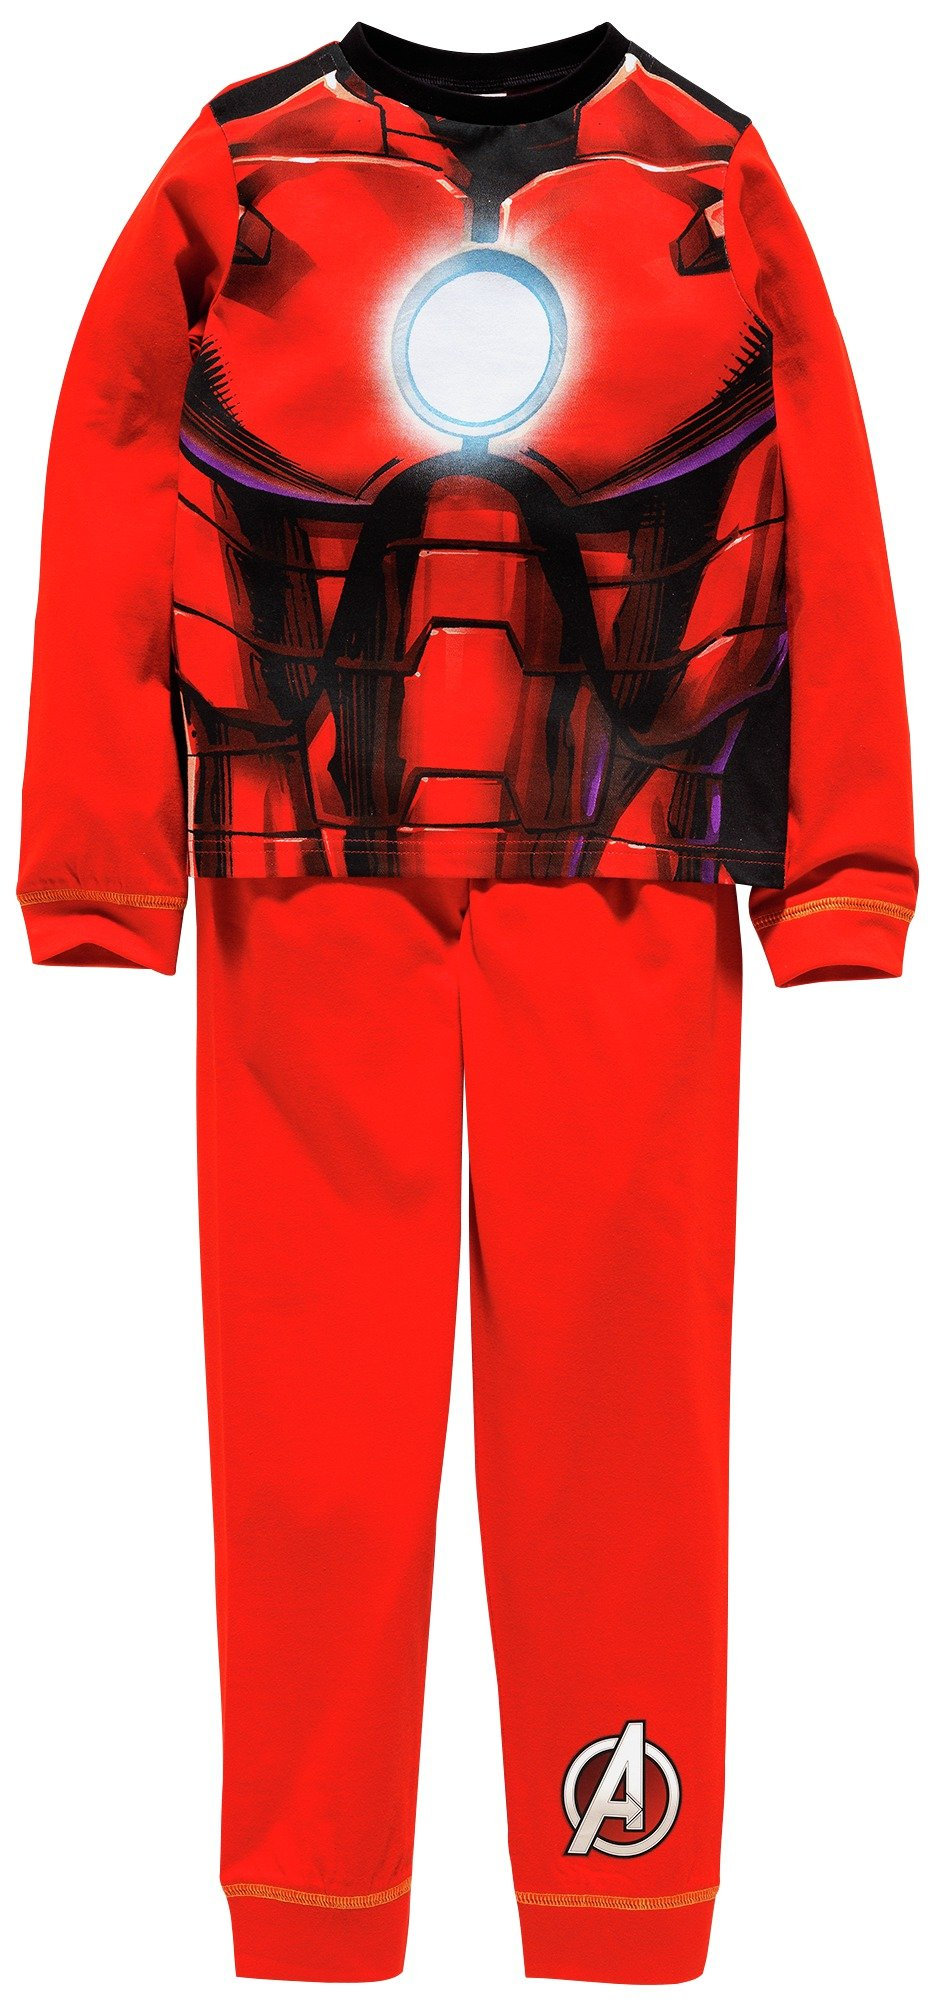 Image of Iron Man Novelty Pyjamas - 2-3 Years.